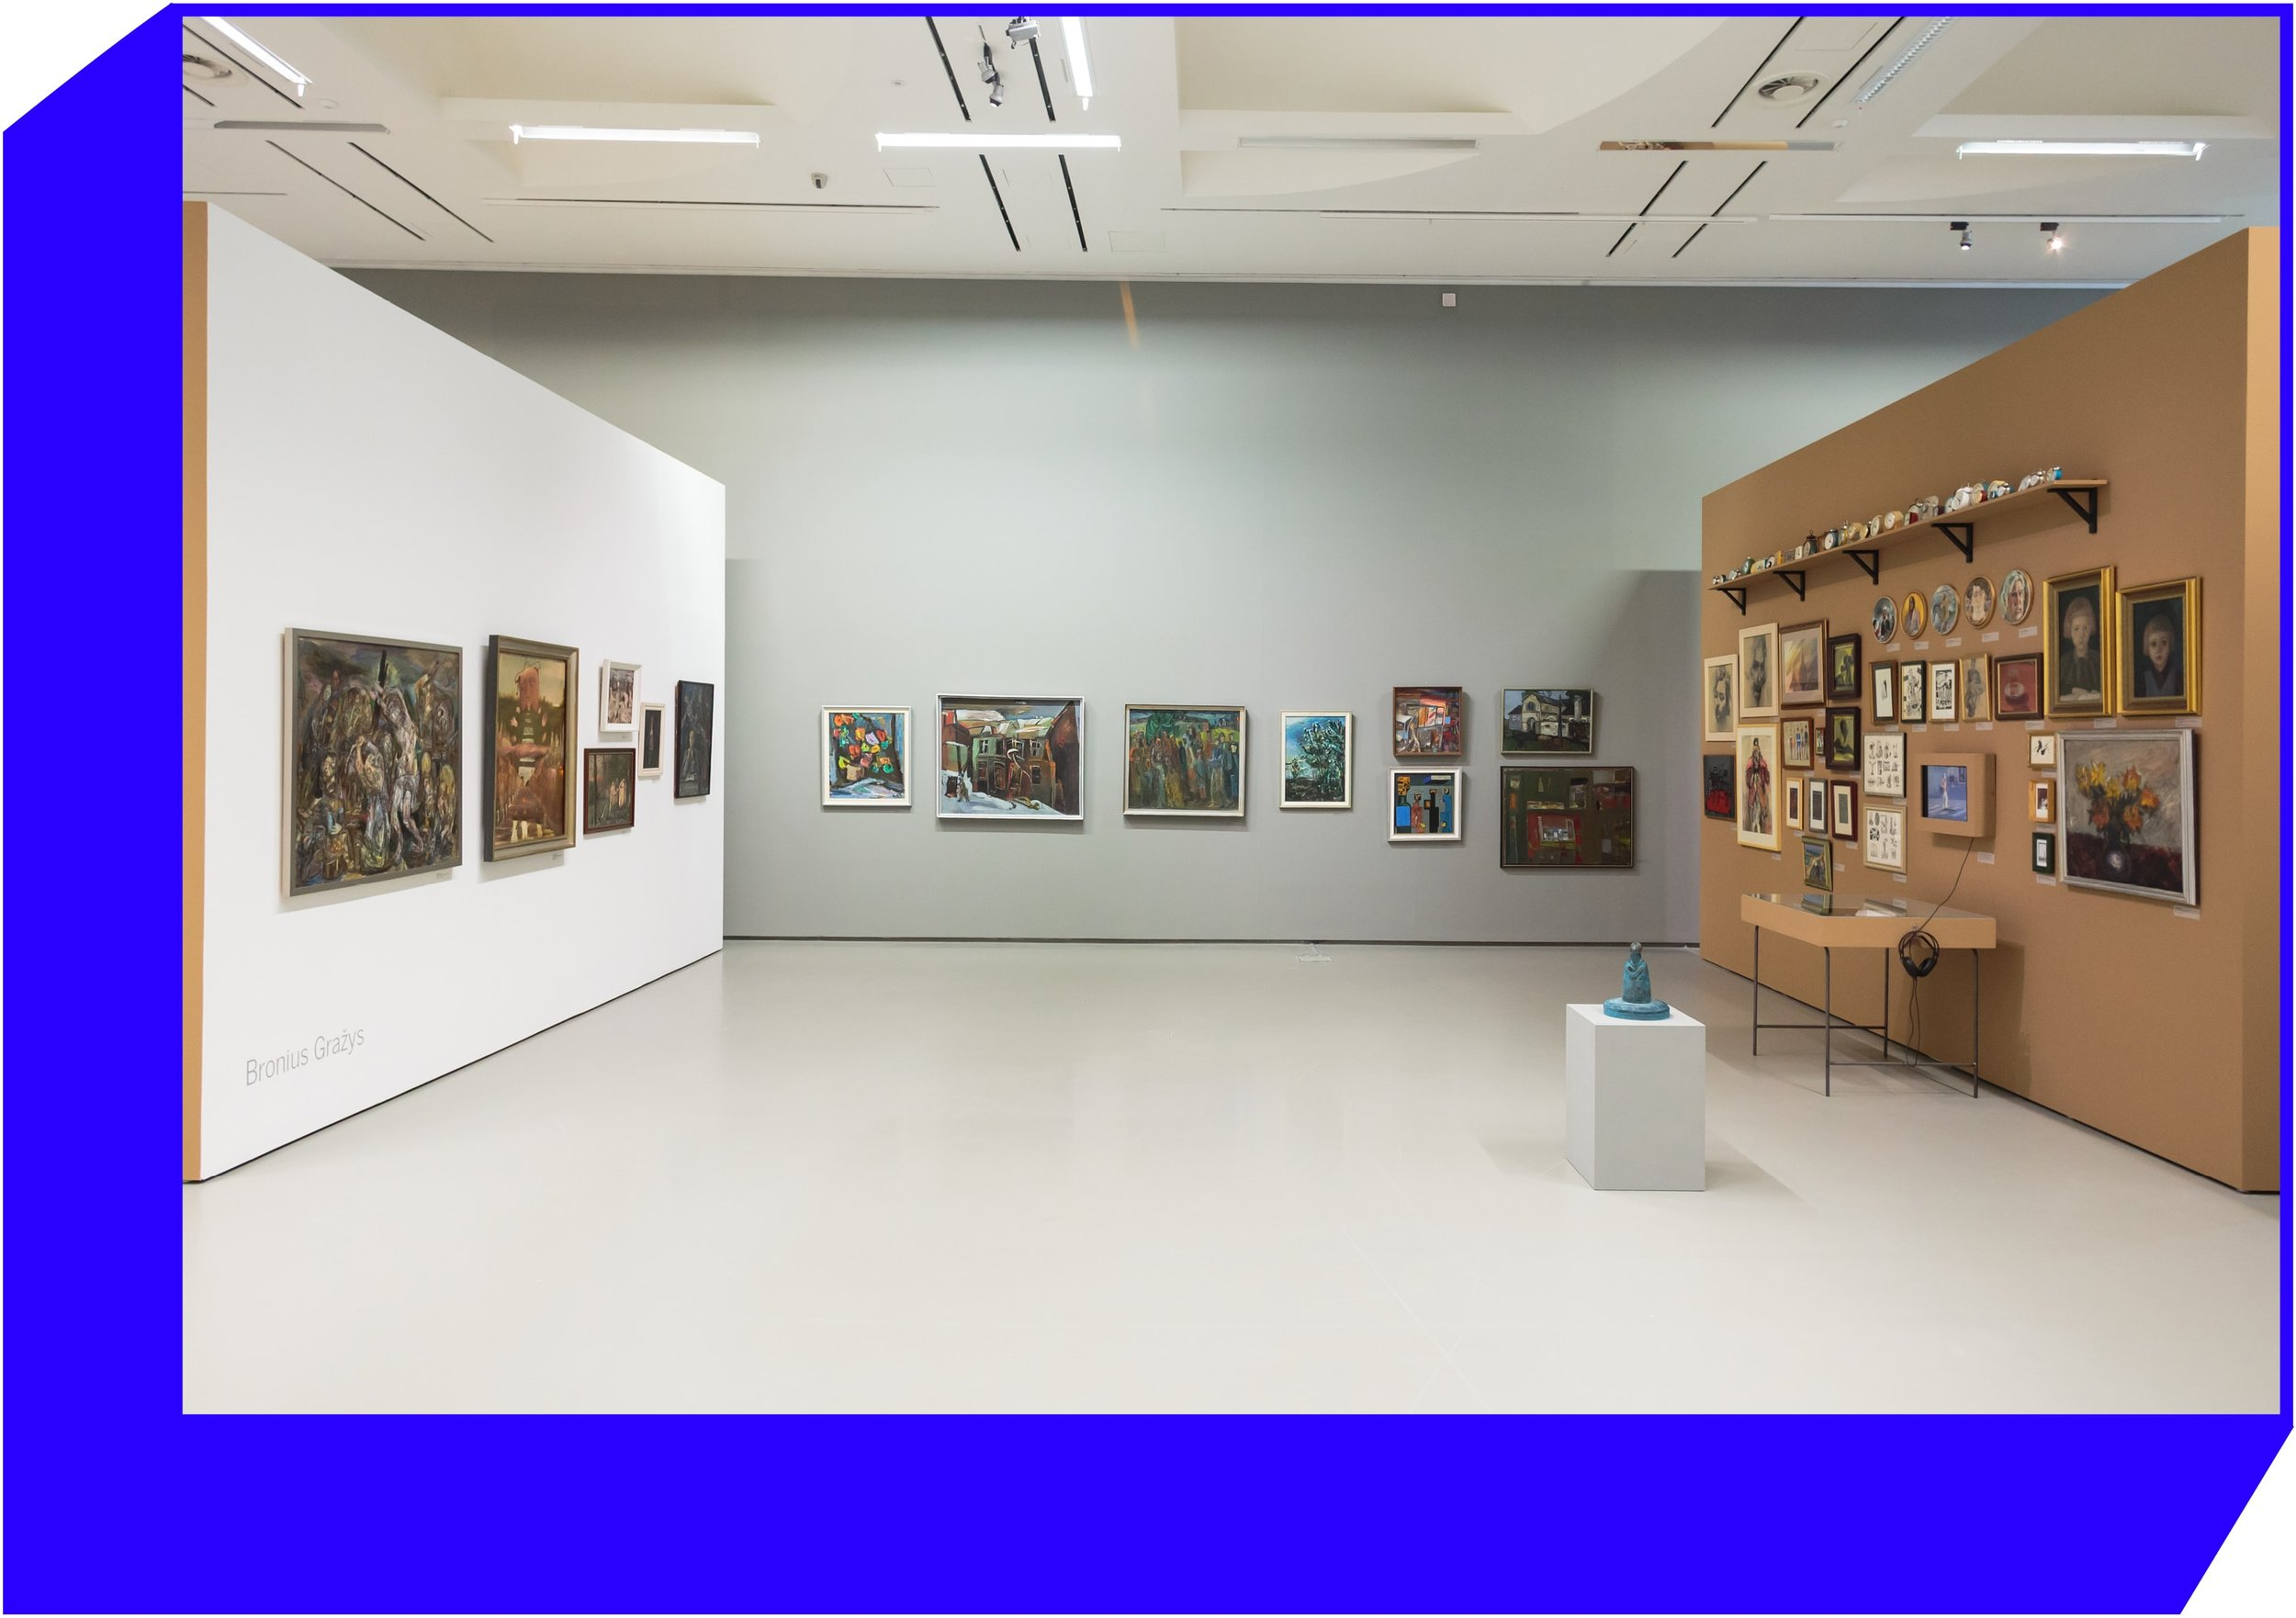 Exposition of Bronius Gražys collection at the exhibition  Silent Collections. Privately Owned Lithuanian and Estonian Art from the Second Half of the 20th Century.  Photo   by Tomas Kapočius.